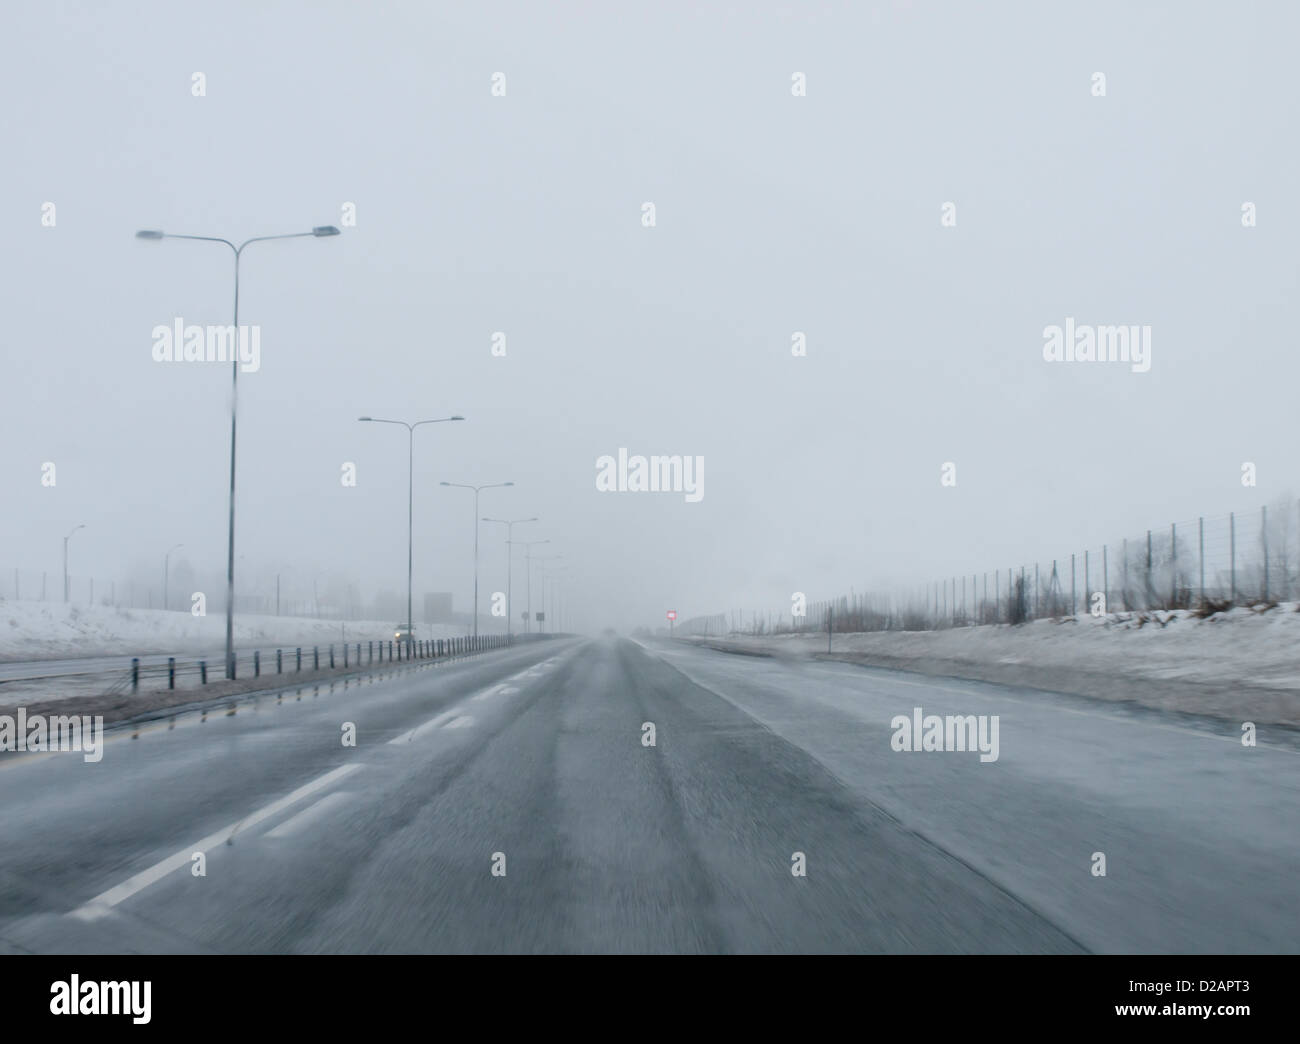 low visibility, poor driving conditions, sleet, fog and snow on the highway, typical winter scenery in Norway - Stock Image